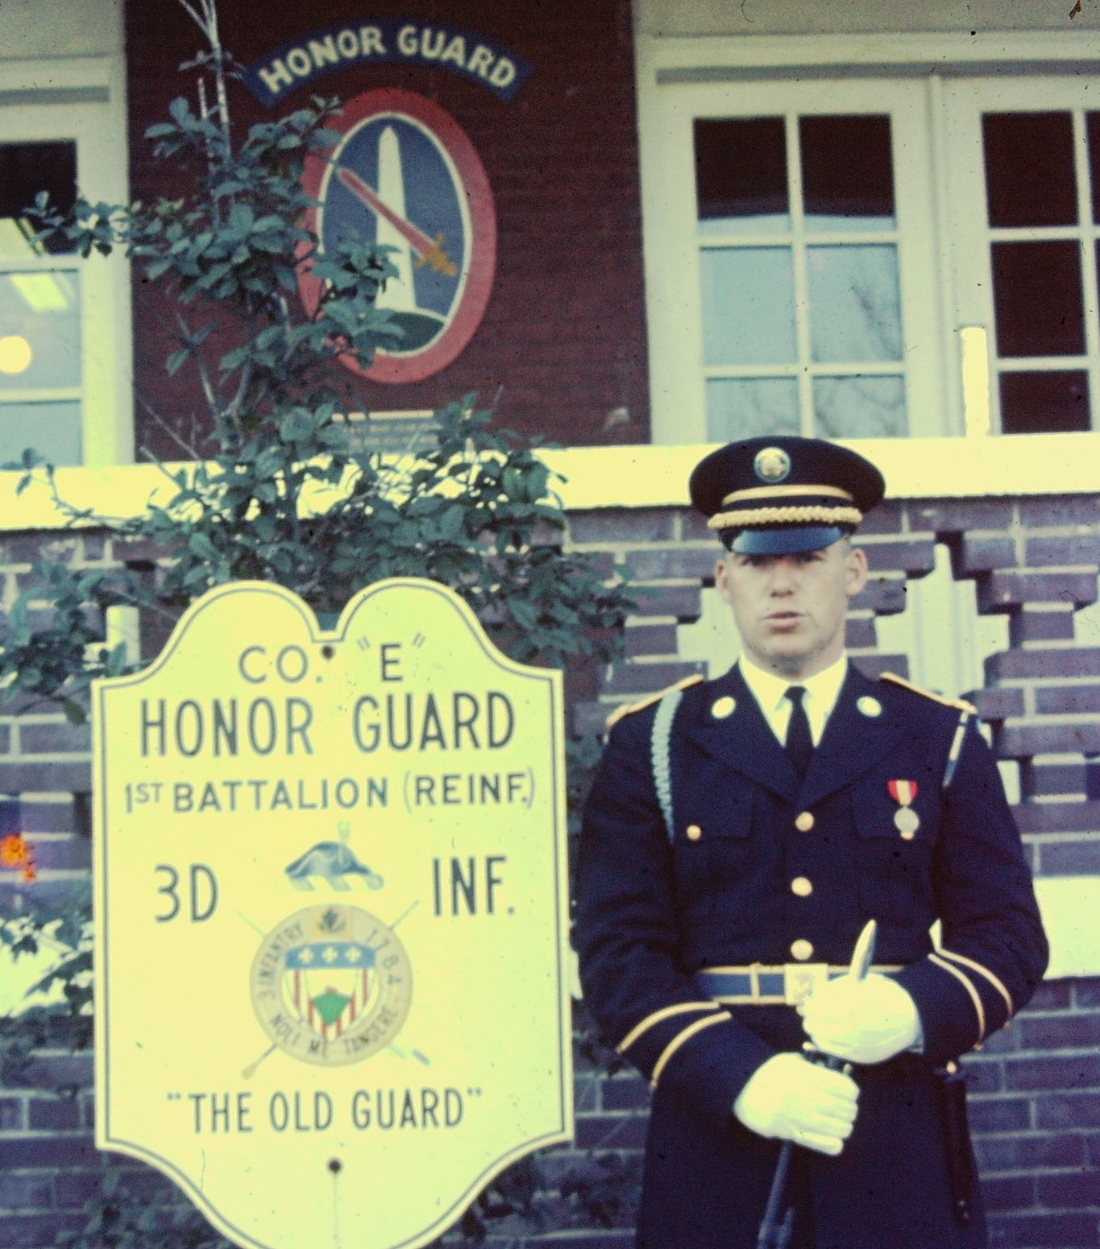 PFC William Carpenter at the Honor Guard barracks, Fort Meyers, Virginia, adjacent to  Arlington National Cemetery